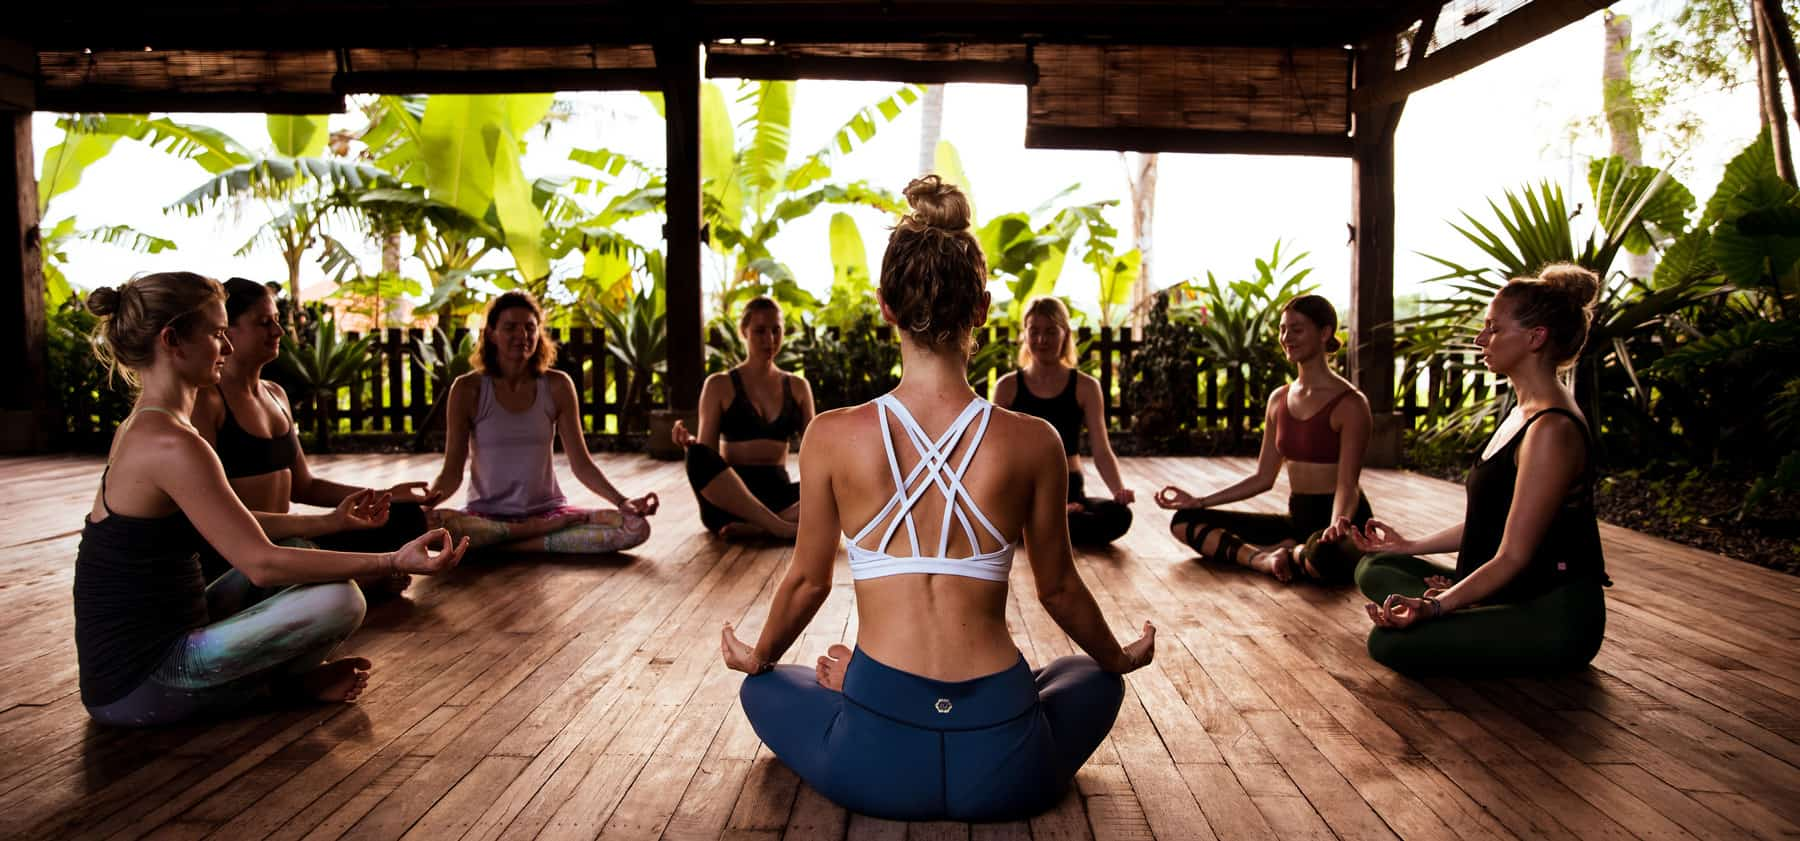 Yoga & Juliet, Retreats, Bali Retreat